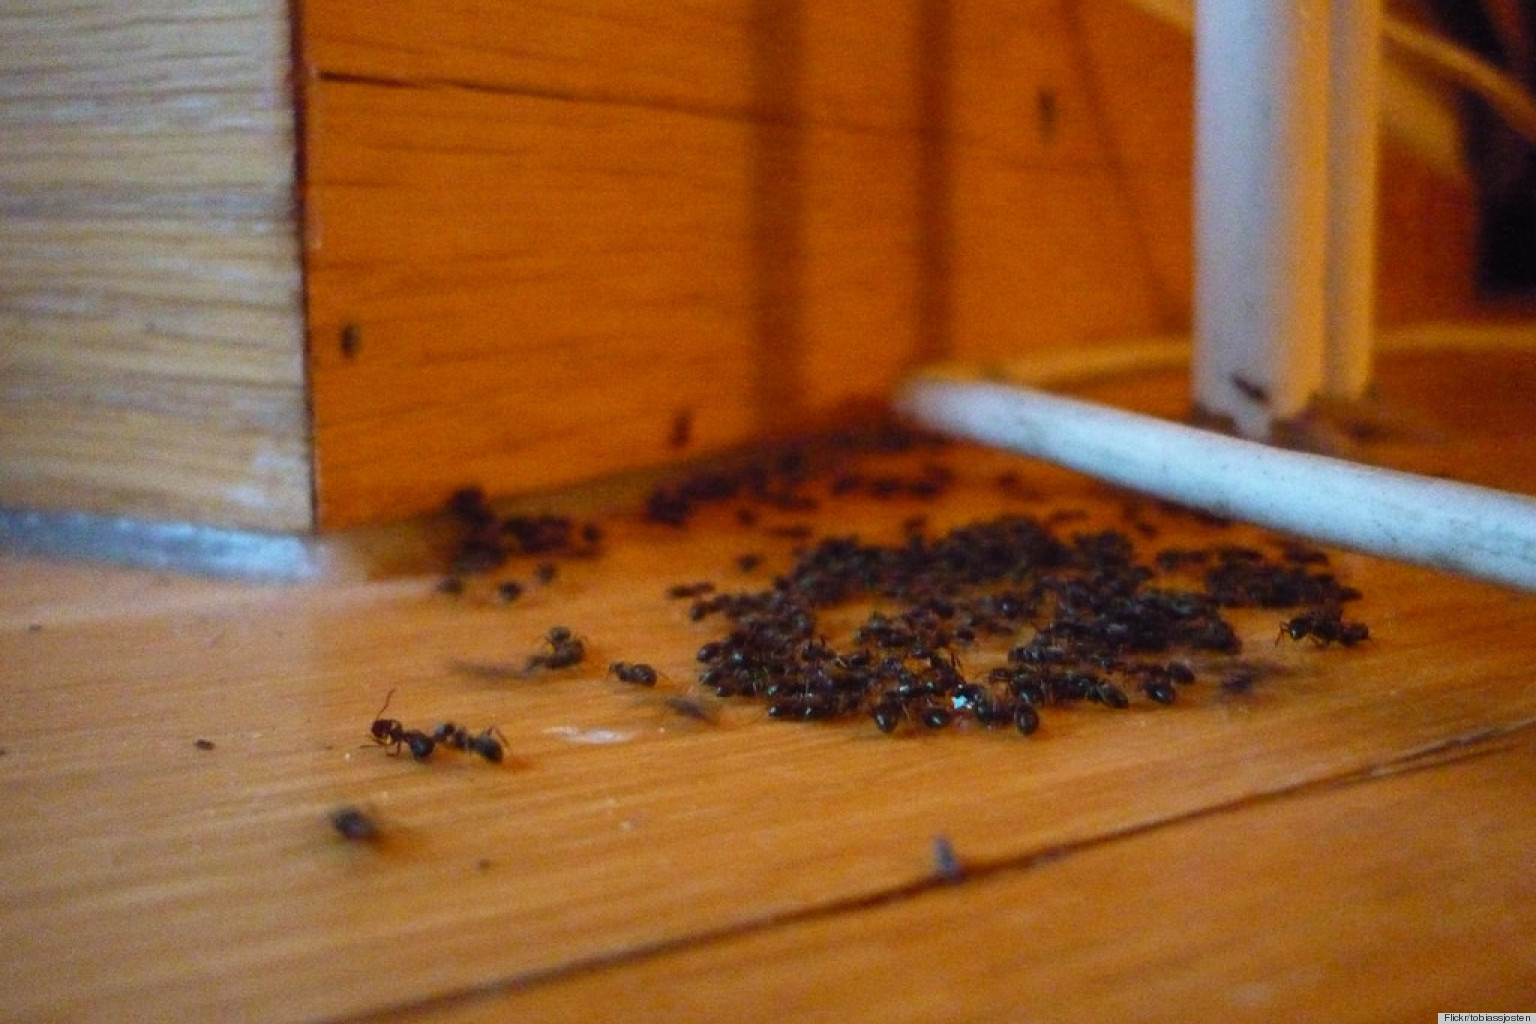 How to naturally get rid of ants how to naturally get rid of ants - Find Out If These 9 Weird Ways To Get Rid Of Ants Actually Work Photos Huffpost